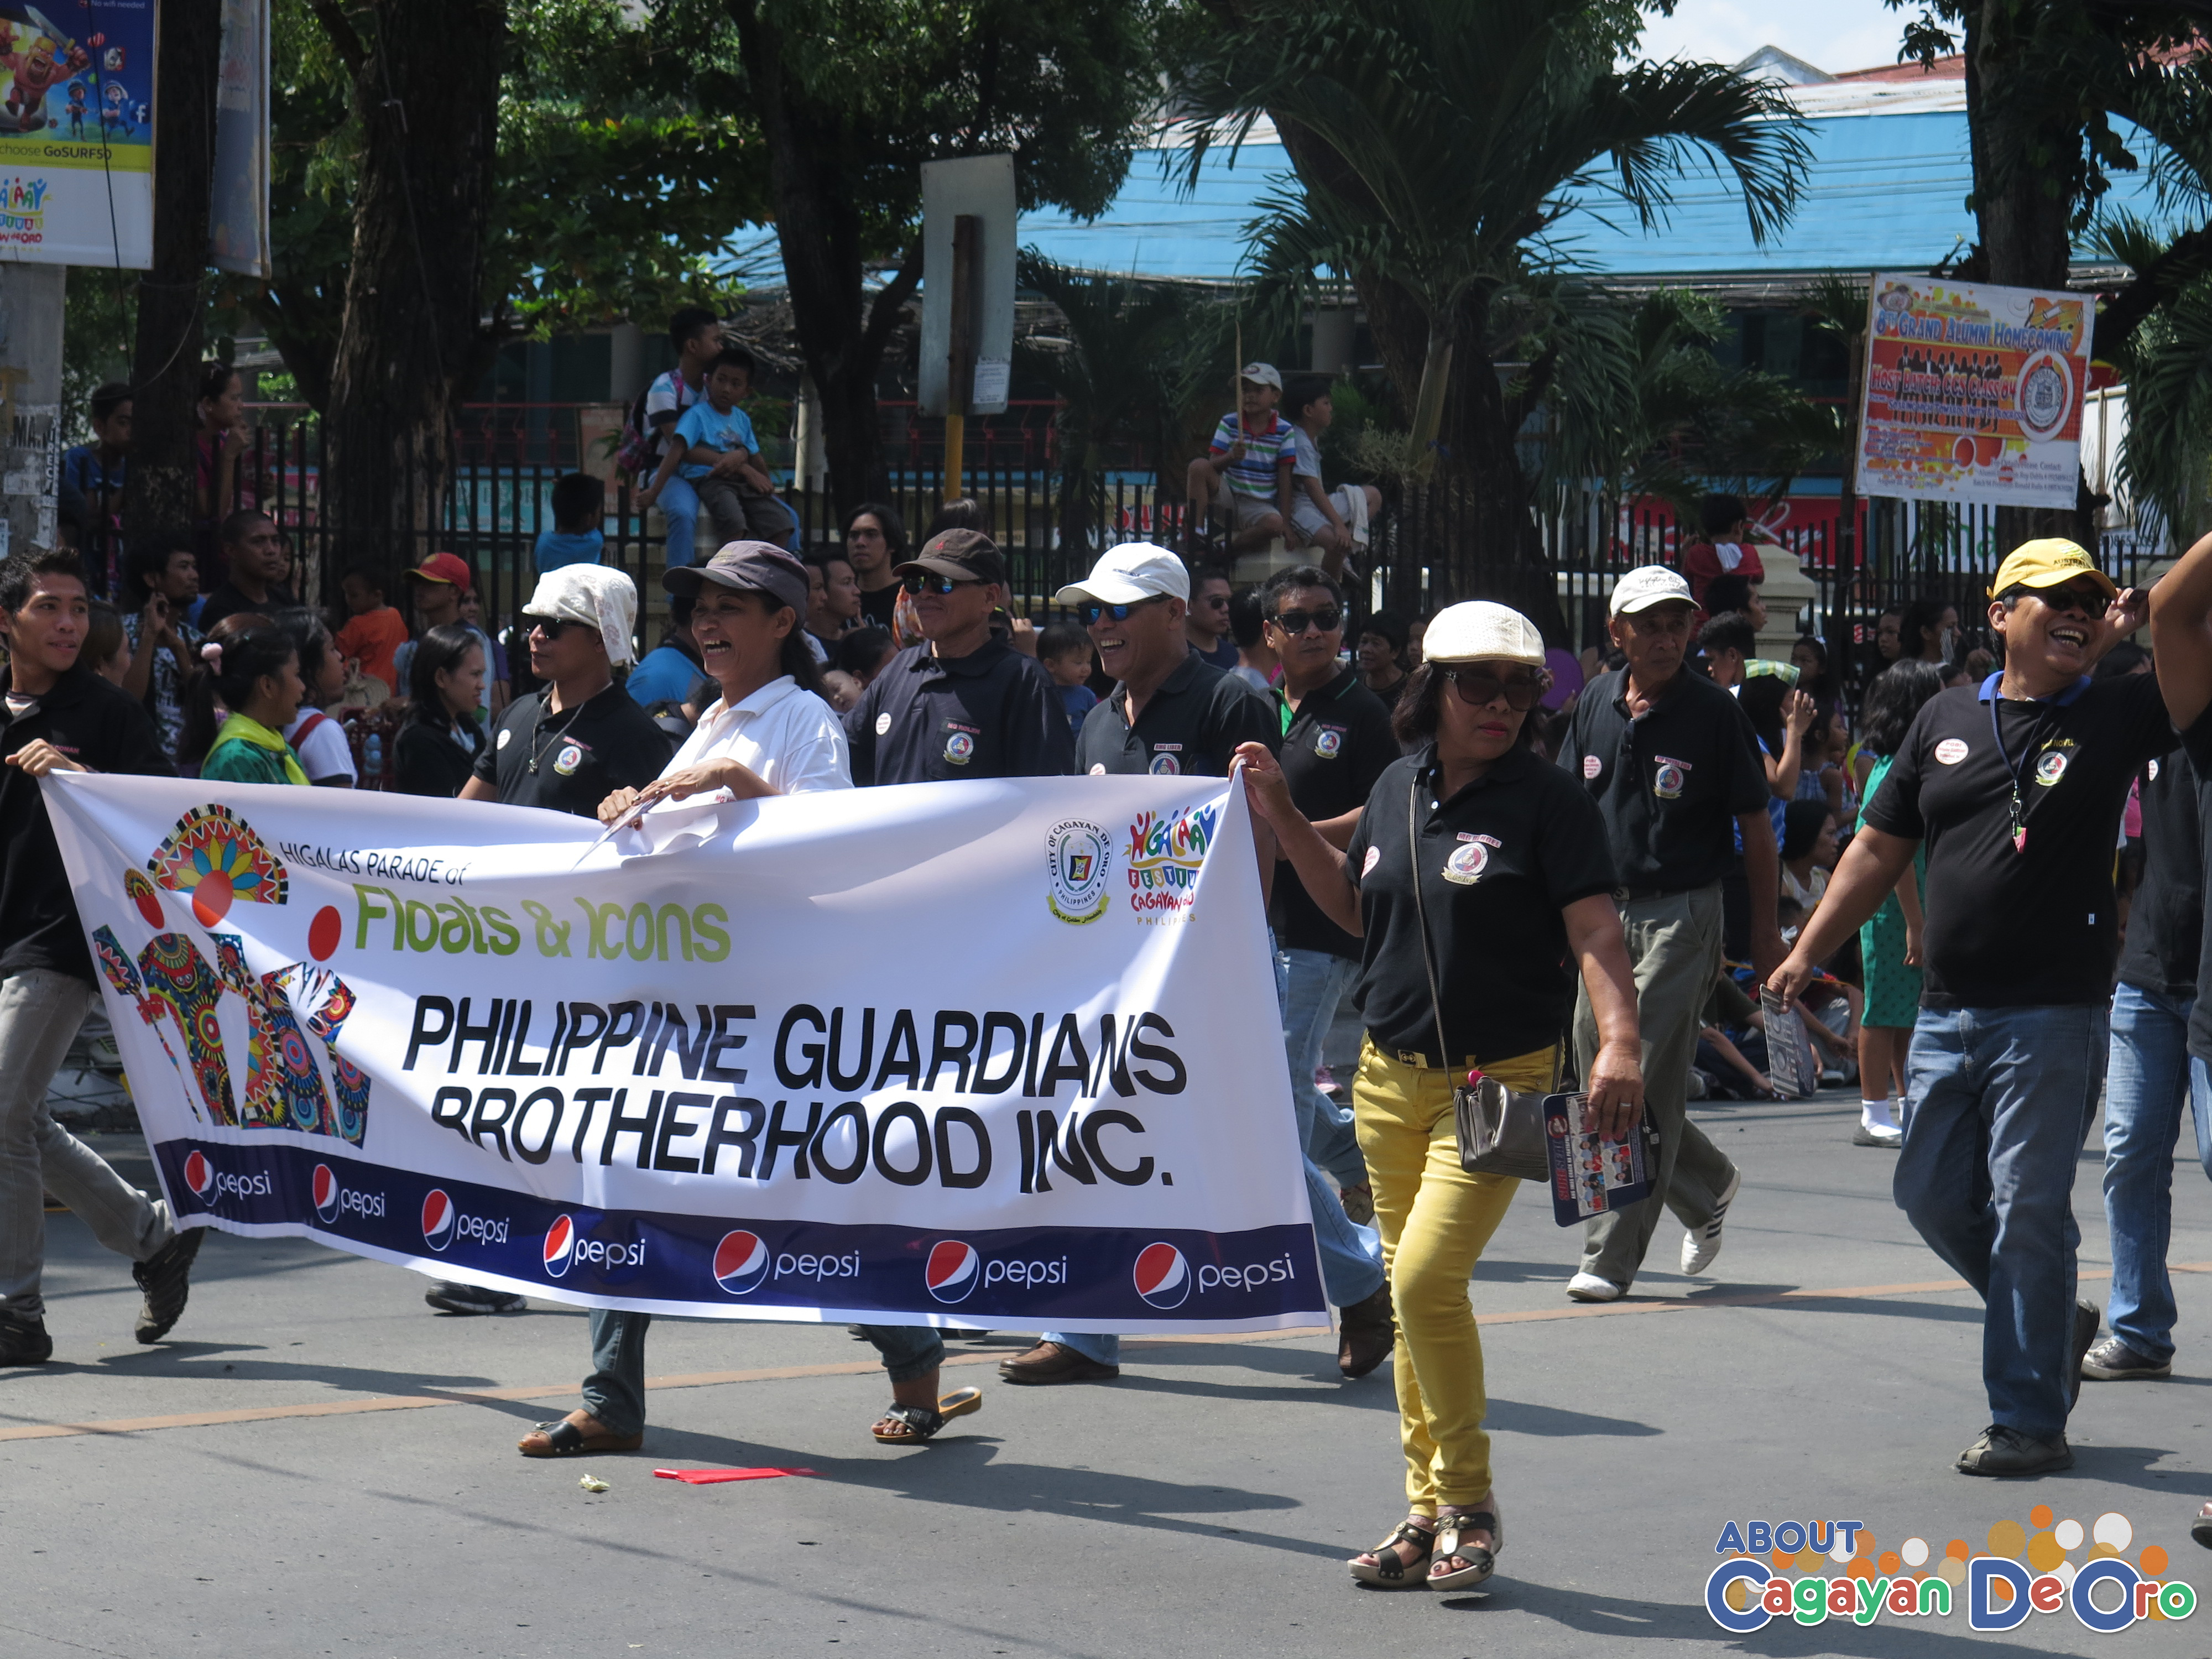 Philippine Guardians Brotherhood Inc. at Cagayan de Oro The Higalas Parade of Floats and Icons 2015